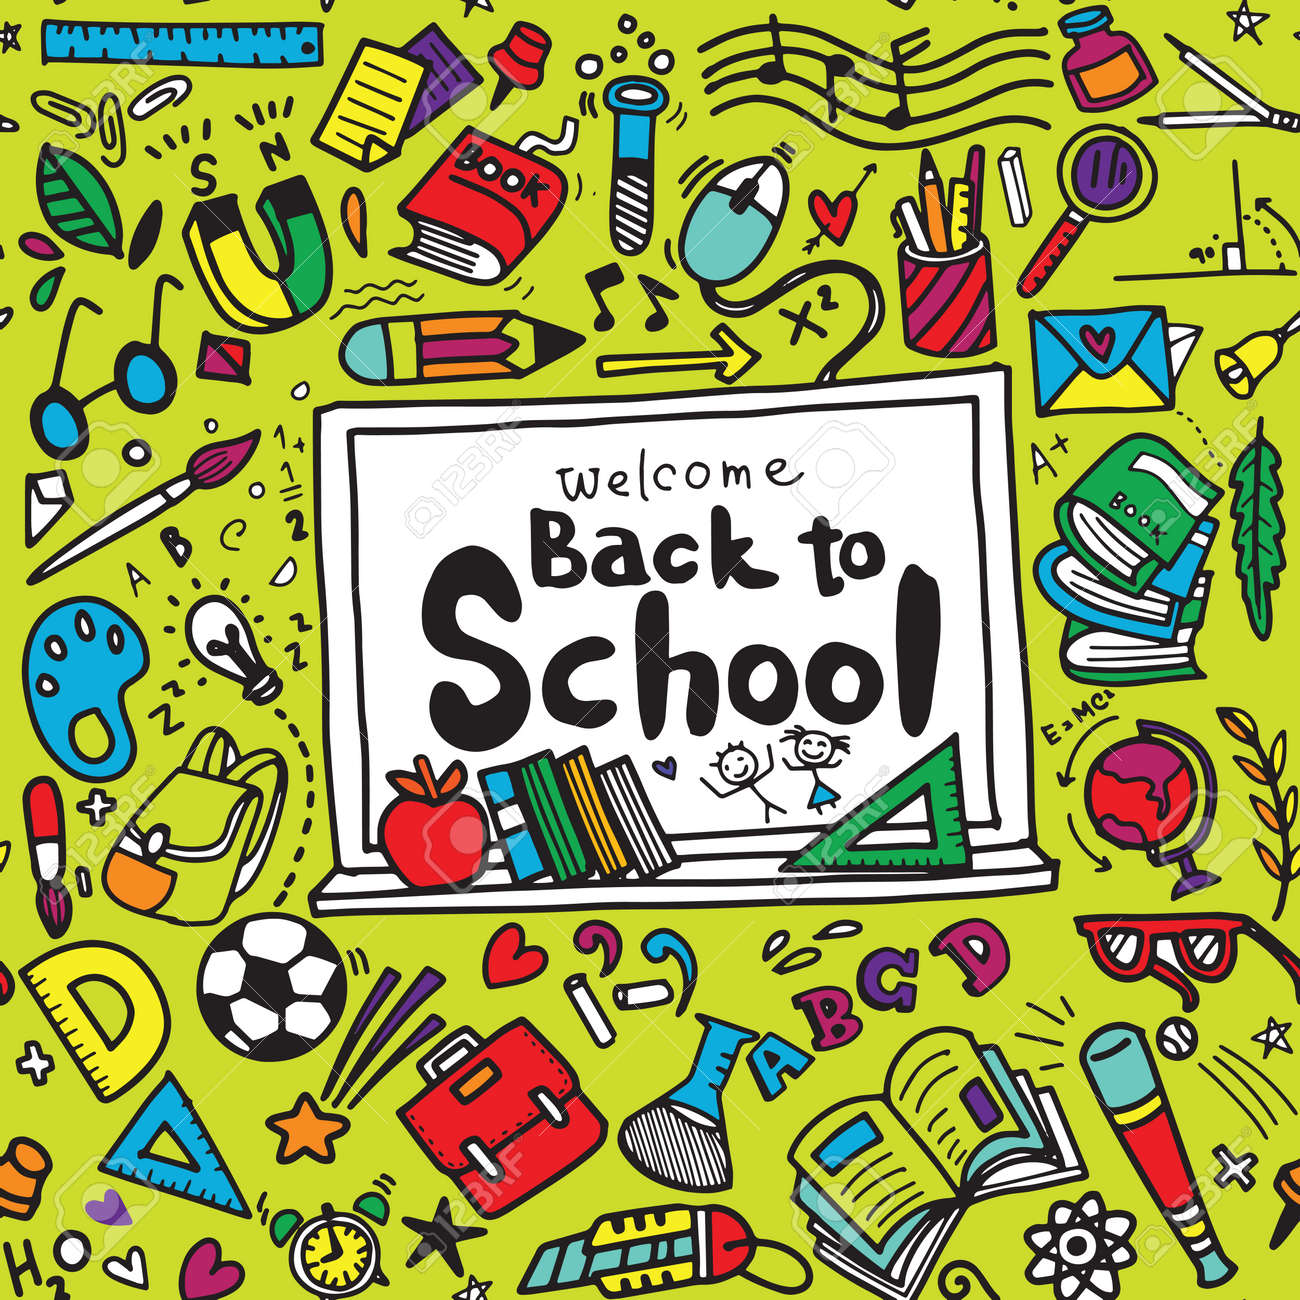 Welcome Back to School poster with doodles,Good for textile fabric